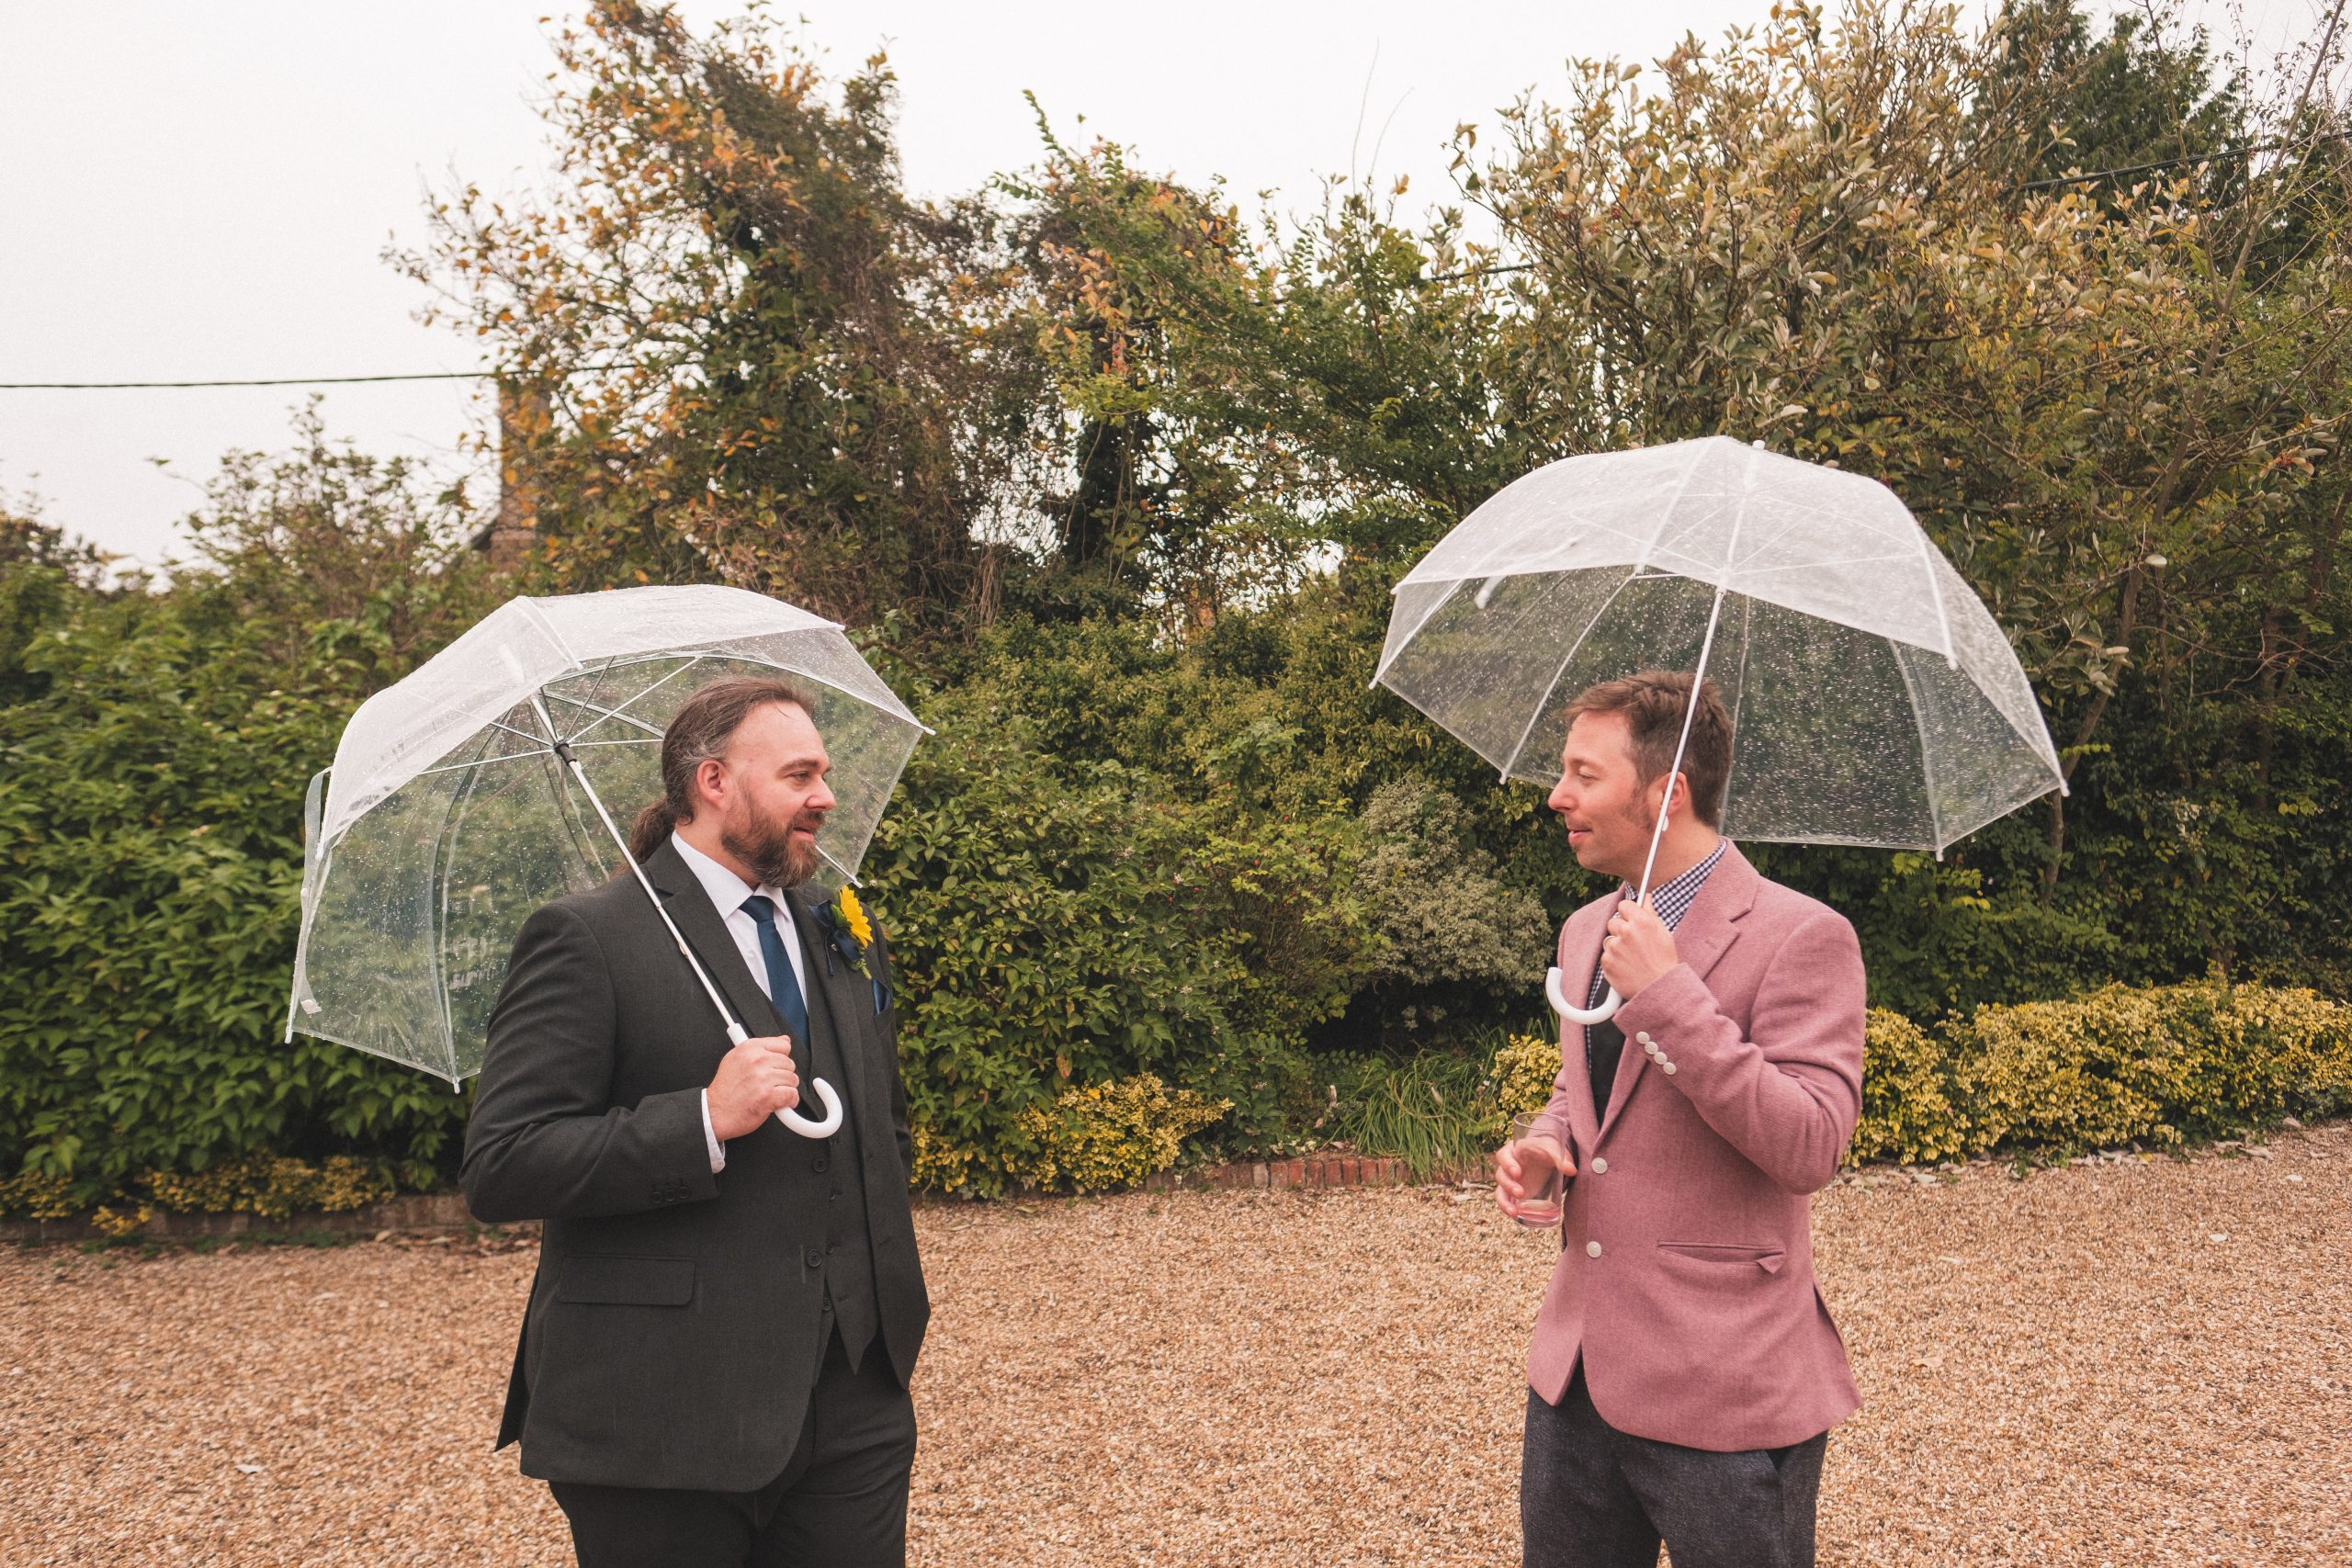 wedding guests in the rain at Essex wedding